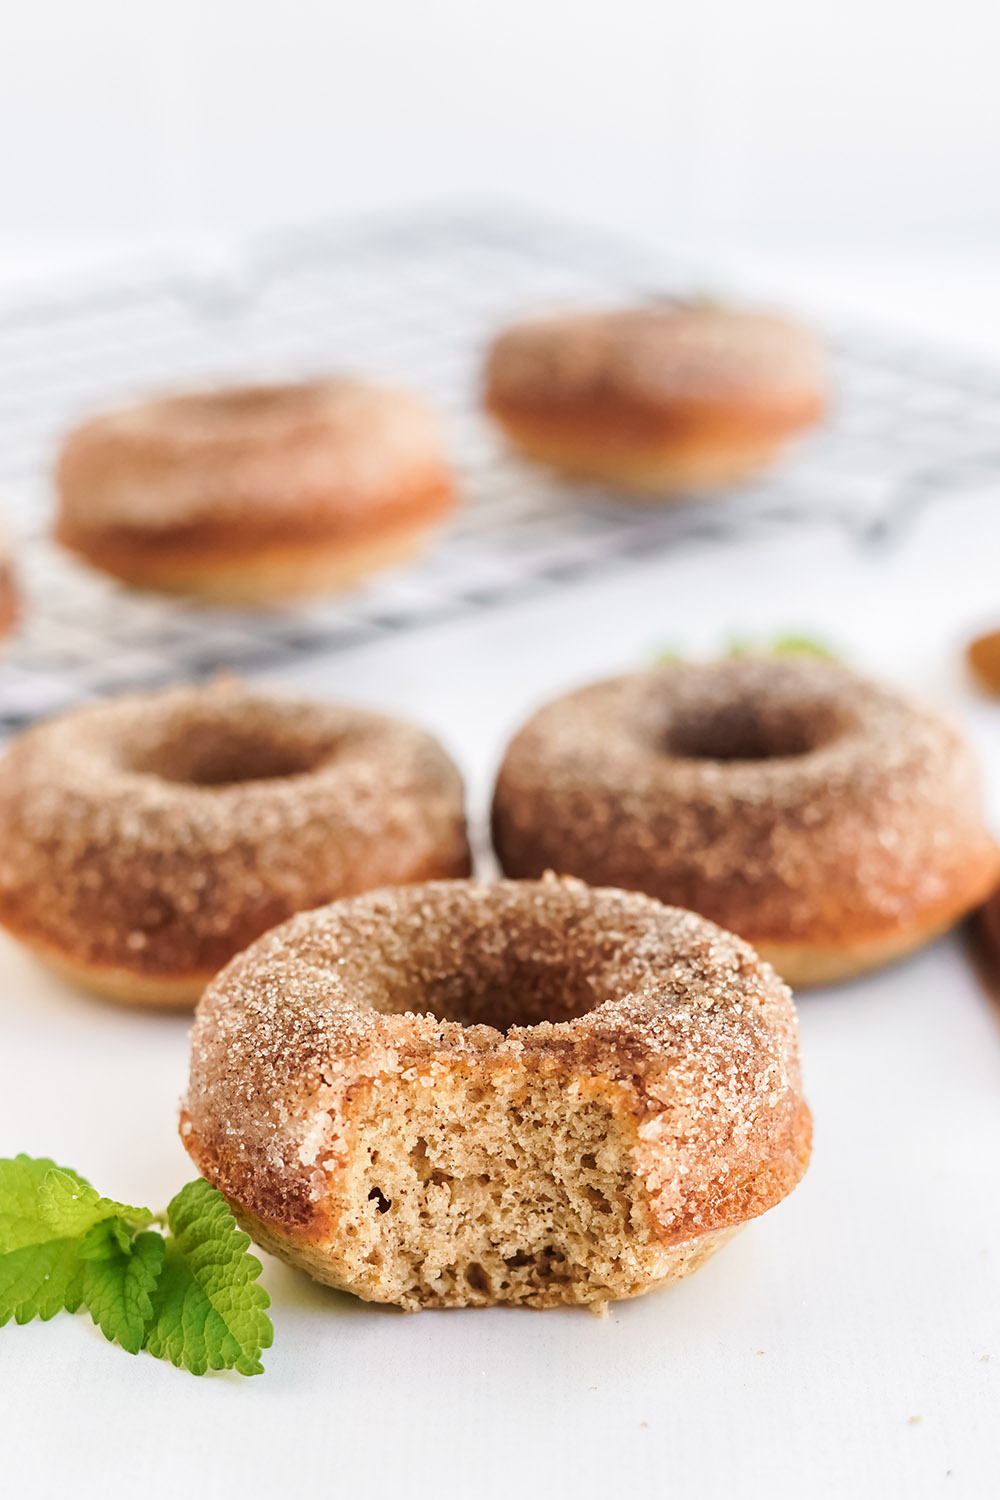 Three apple cider donuts on a table with more on a rack in the background. One donut has a bite taken out of it.